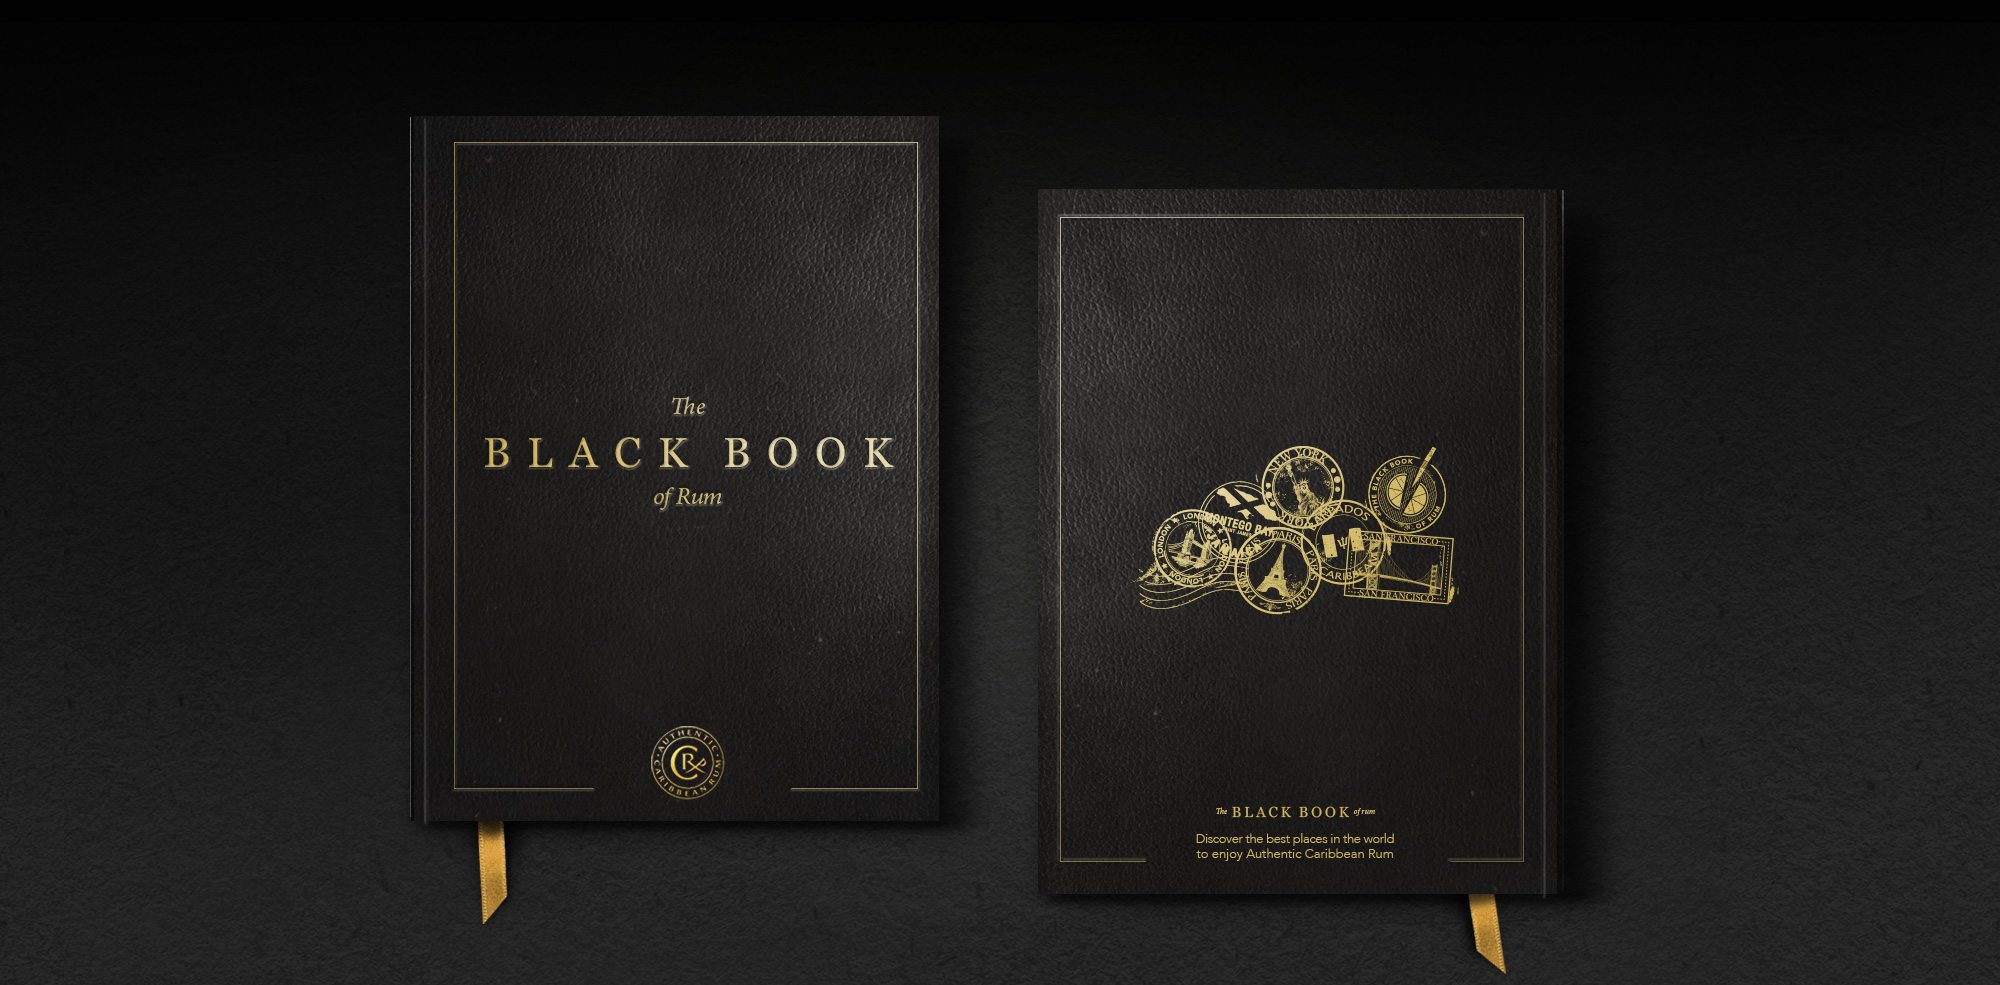 Black Book Of Rum Product Cover Design